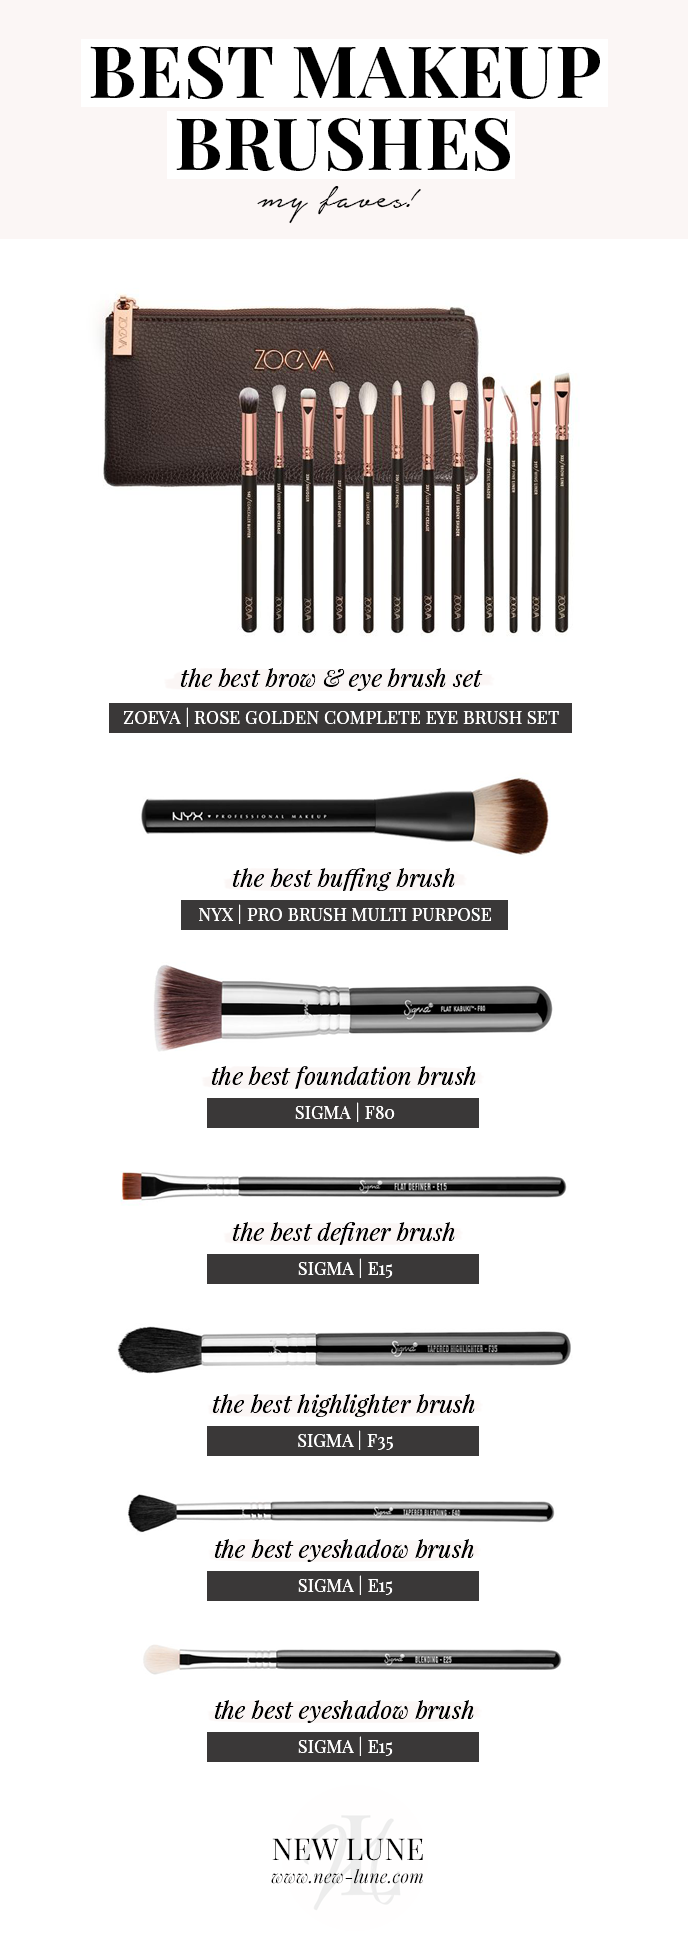 Best Makeup Brushes The best affordable makeup brushes